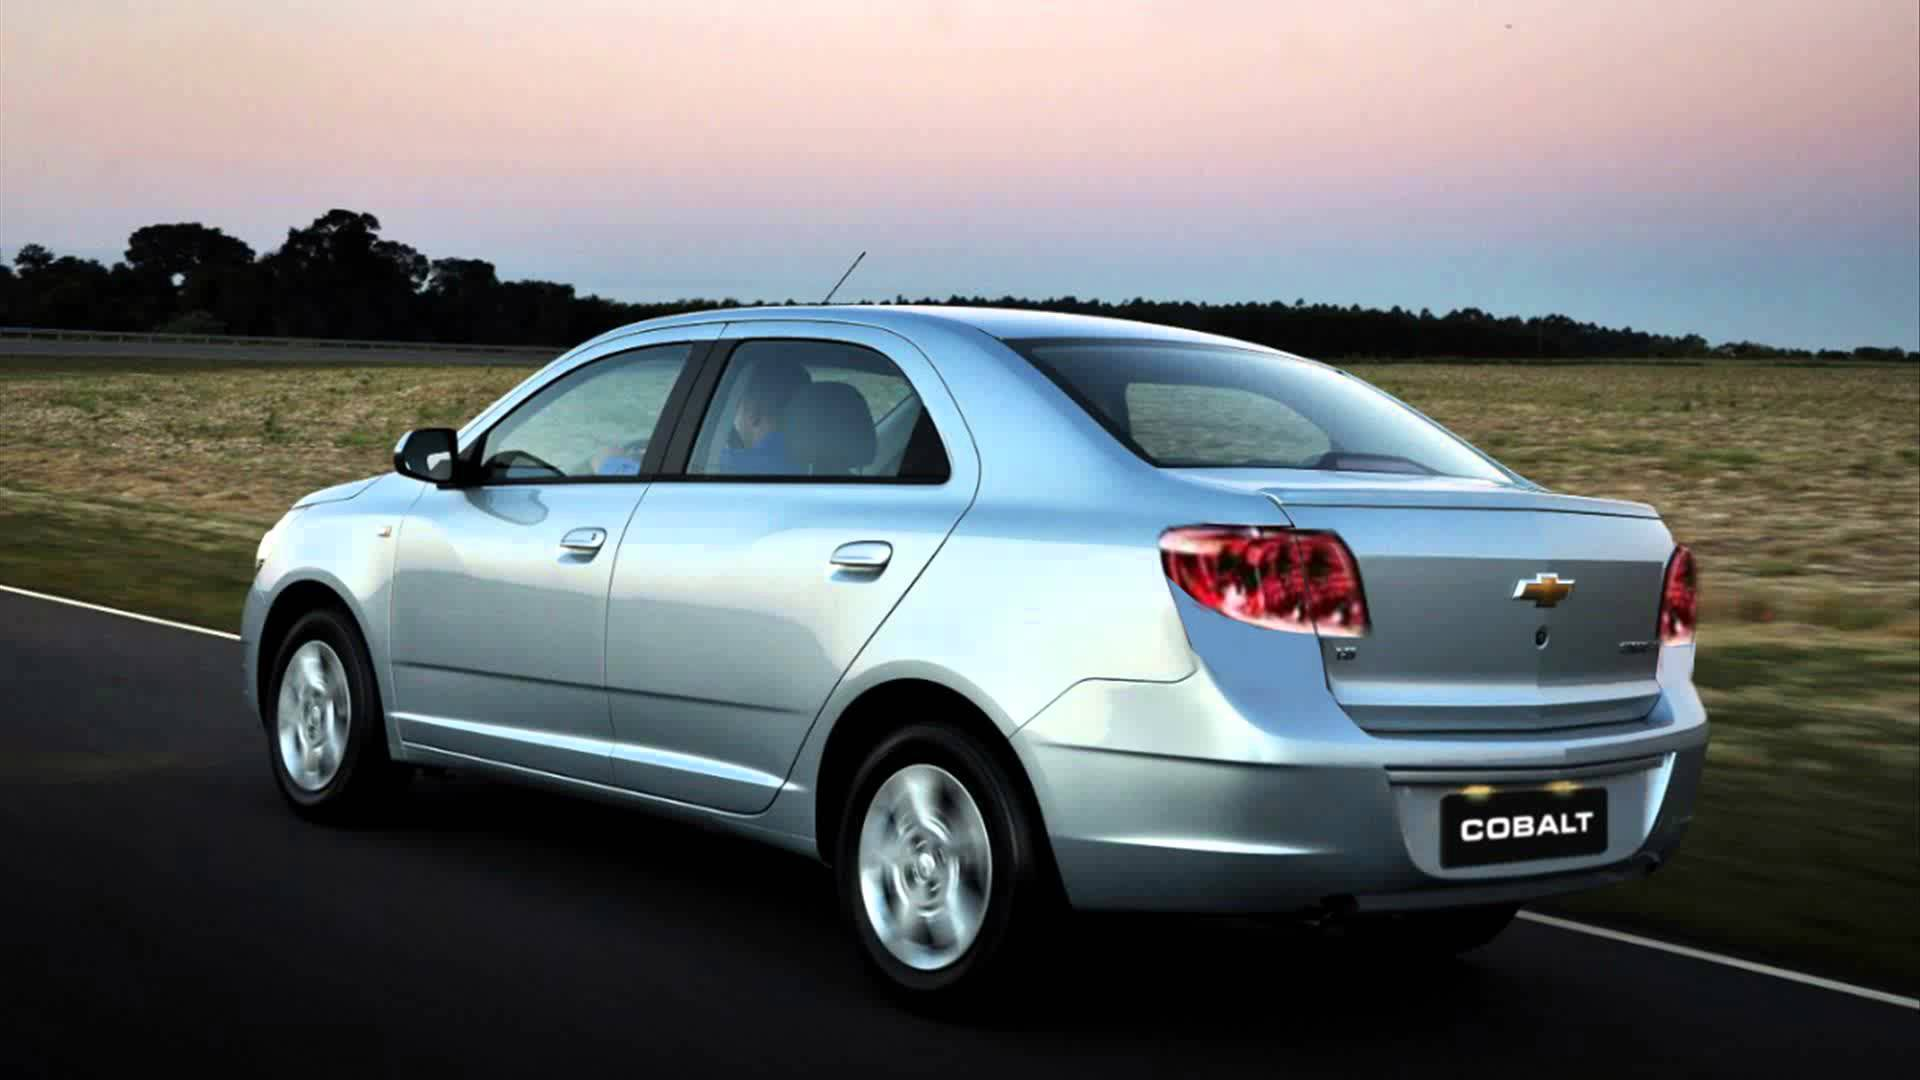 2015 Chevrolet Cobalt Pictures Information And Specs